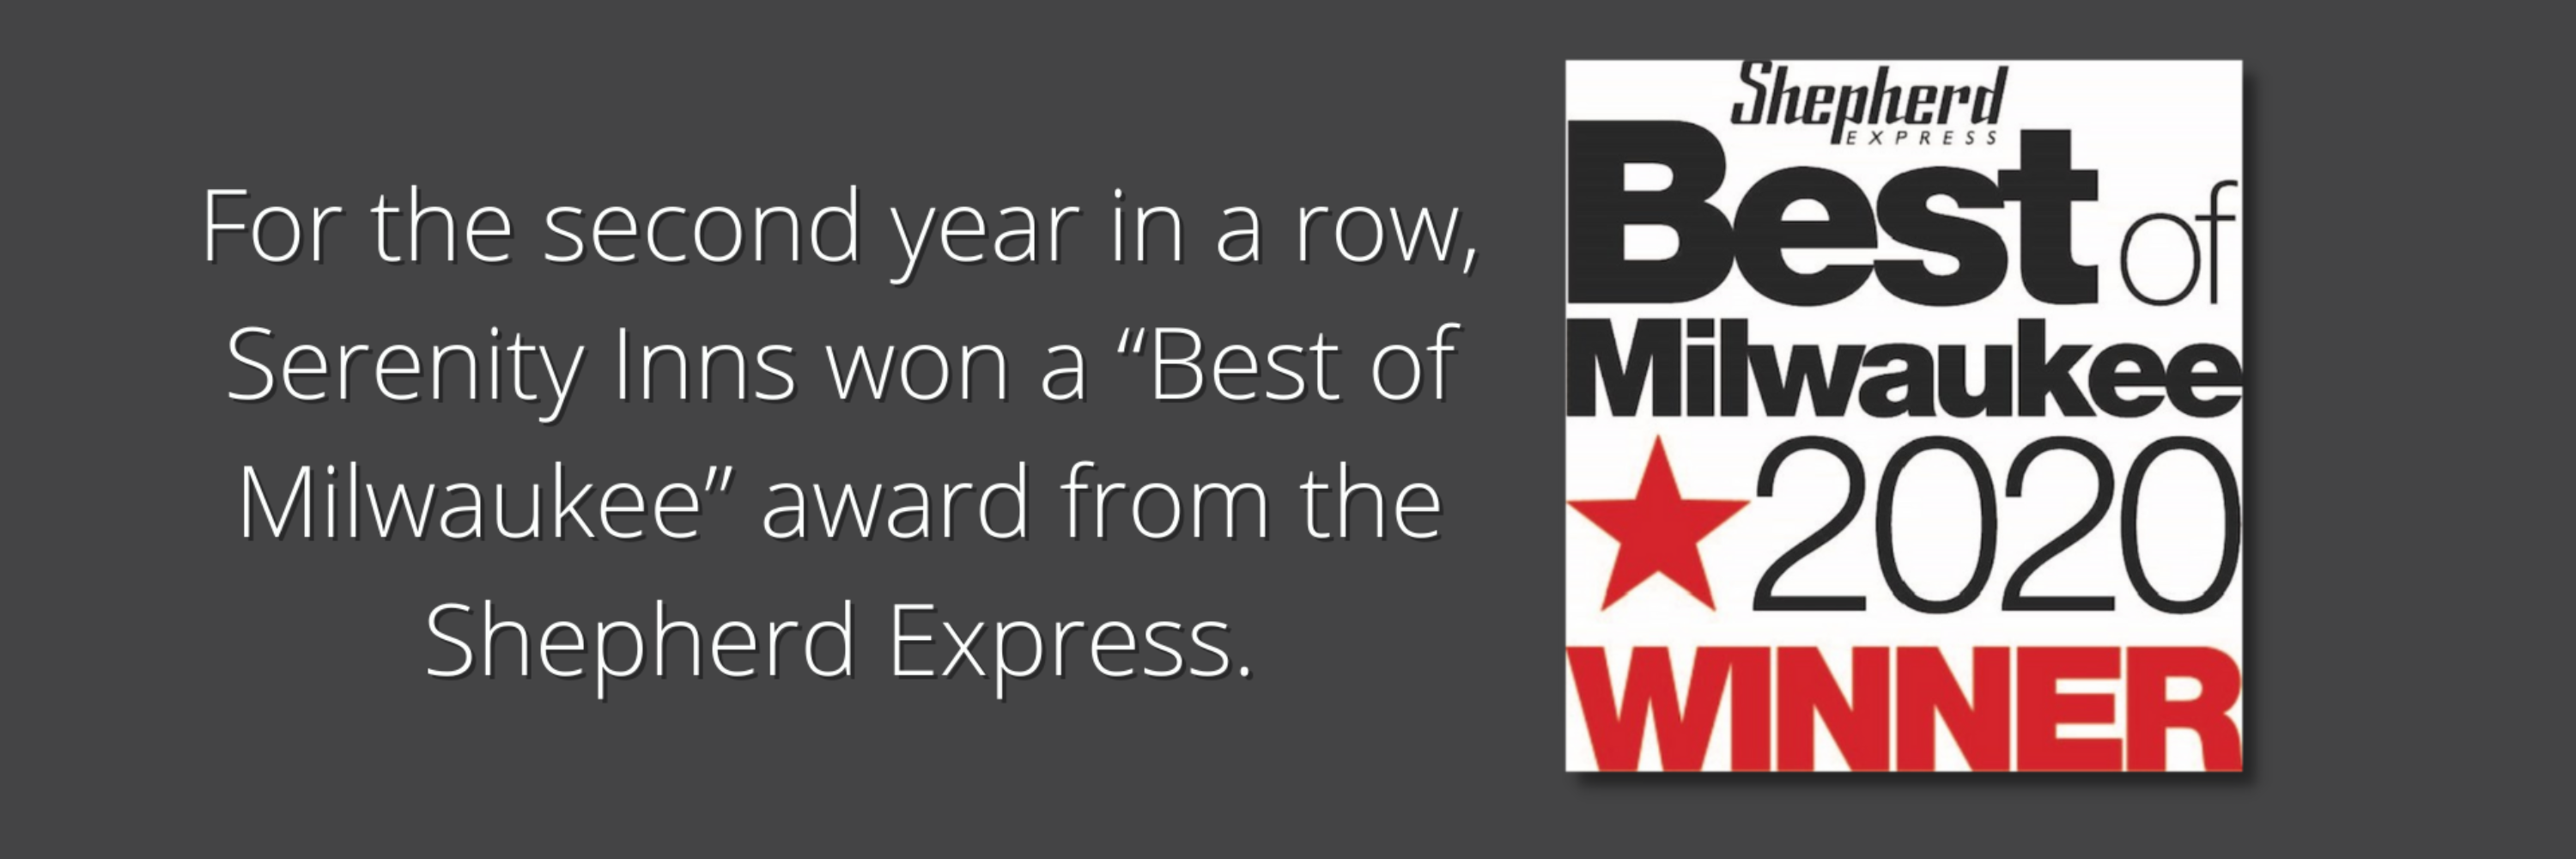 """For the second year in a row, Serenity Inns won a """"Best of Milwaukee"""" award from the Shepherd Express. (2)"""